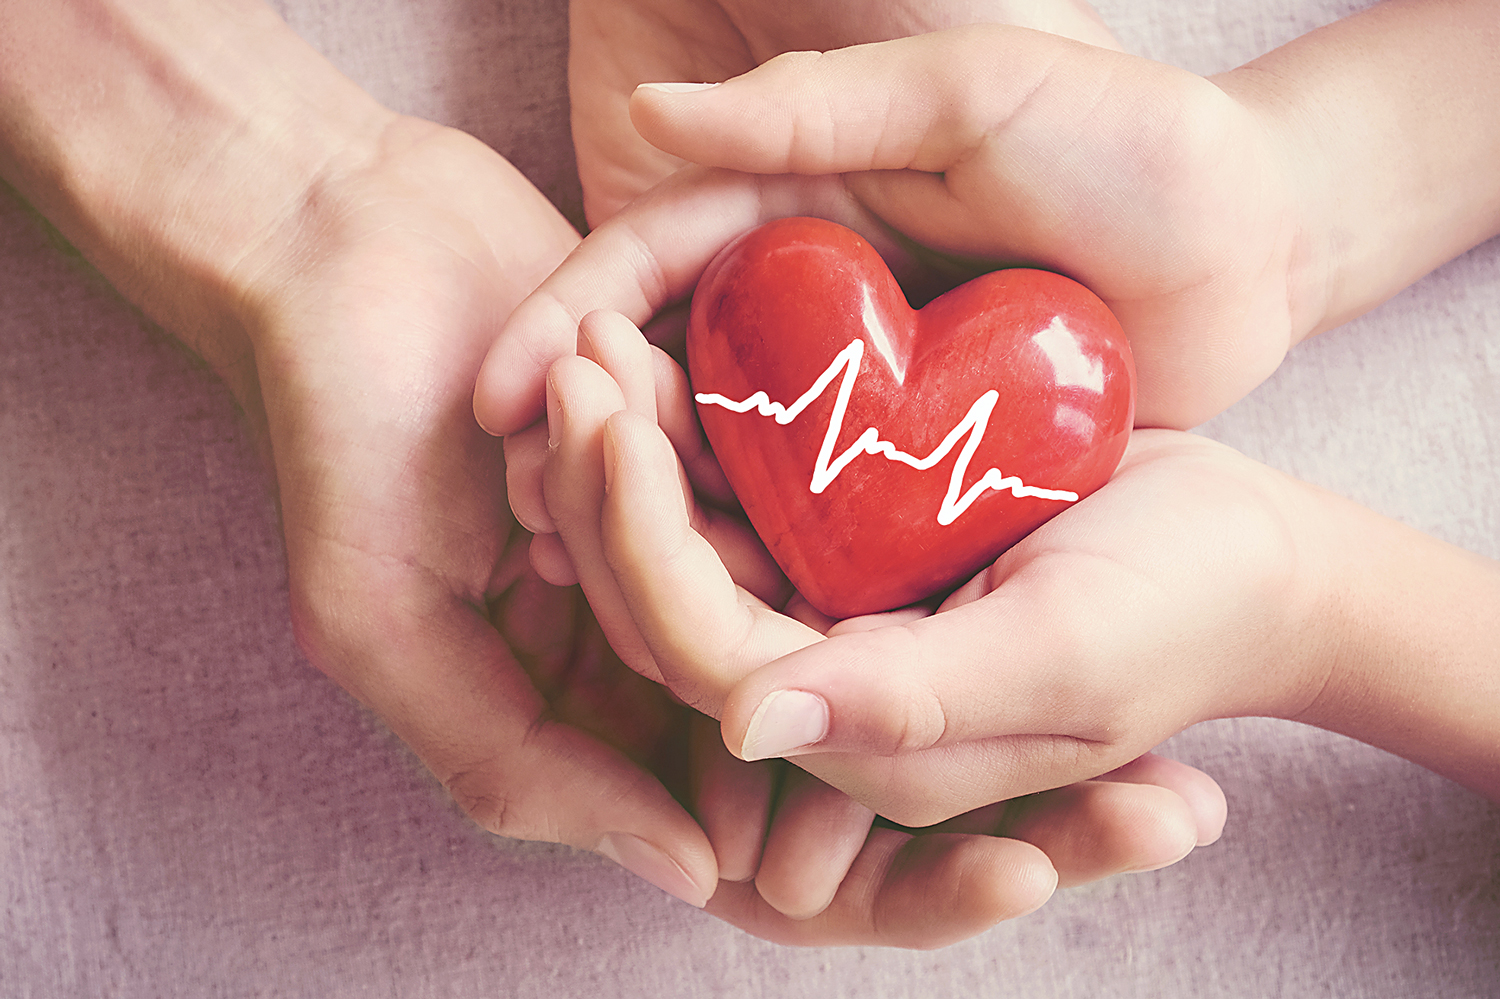 """Christopher Allen, a senior cardiac nurse with the British Heart Foundation, cautions that """"before you start to analyse something you have to understand it"""